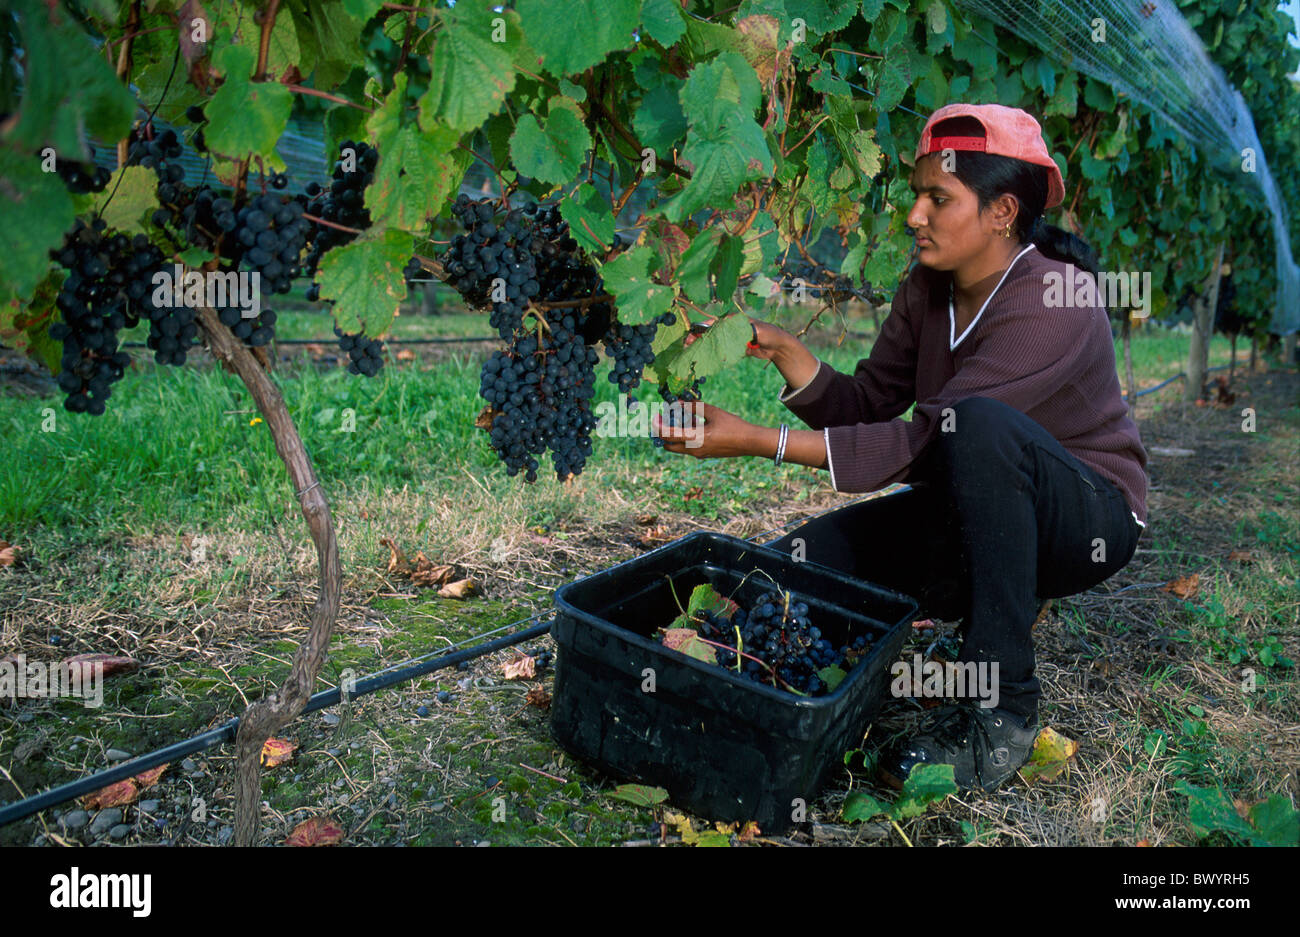 agriculture crop gentle Estate Winery grapes harvest Napier New Zealand north island shoots vineyard vinta - Stock Image